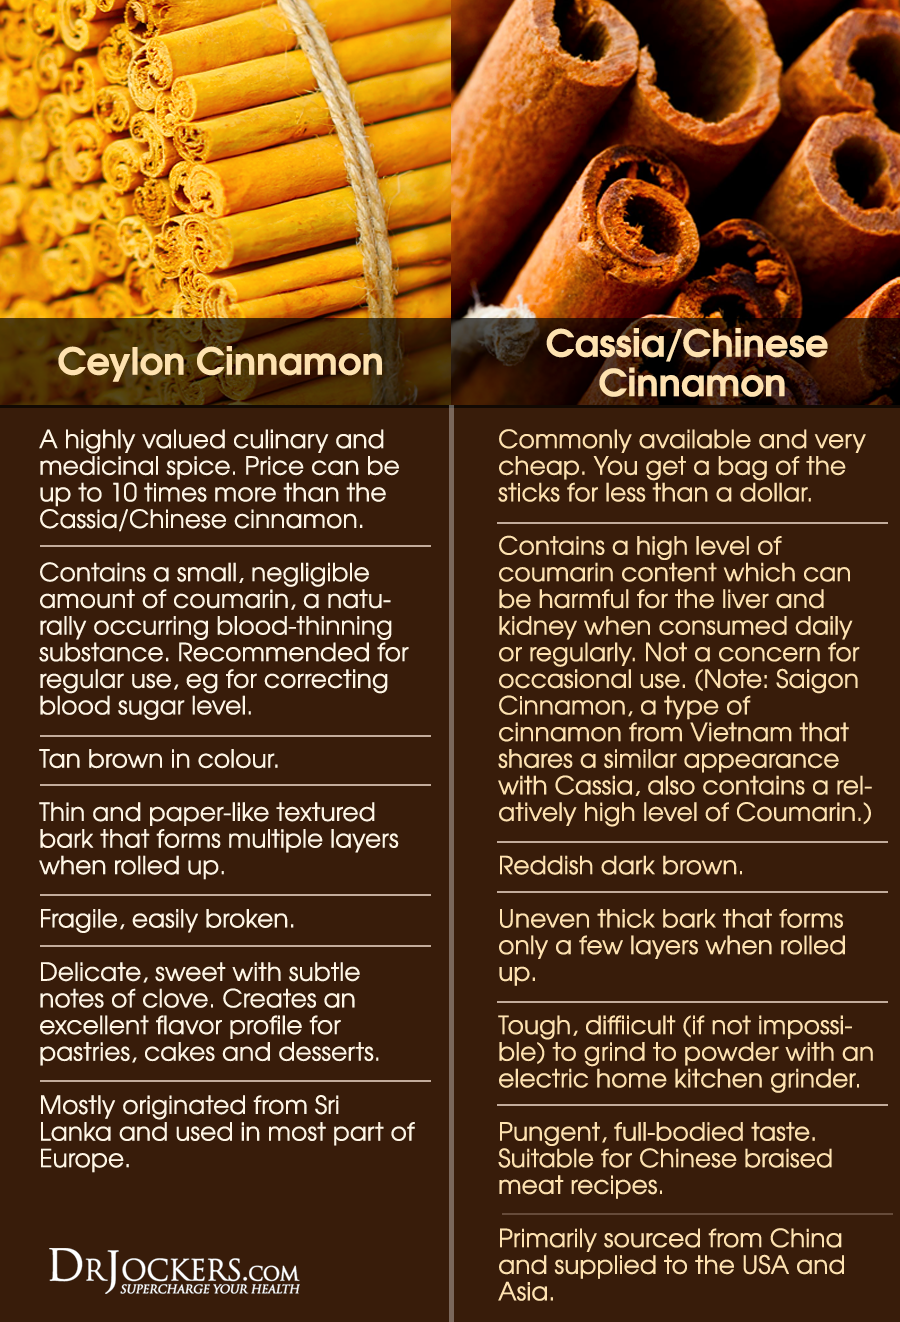 Types Of Wine Bottles Infographic: What Is The Best Type Of Cinnamon To Use?